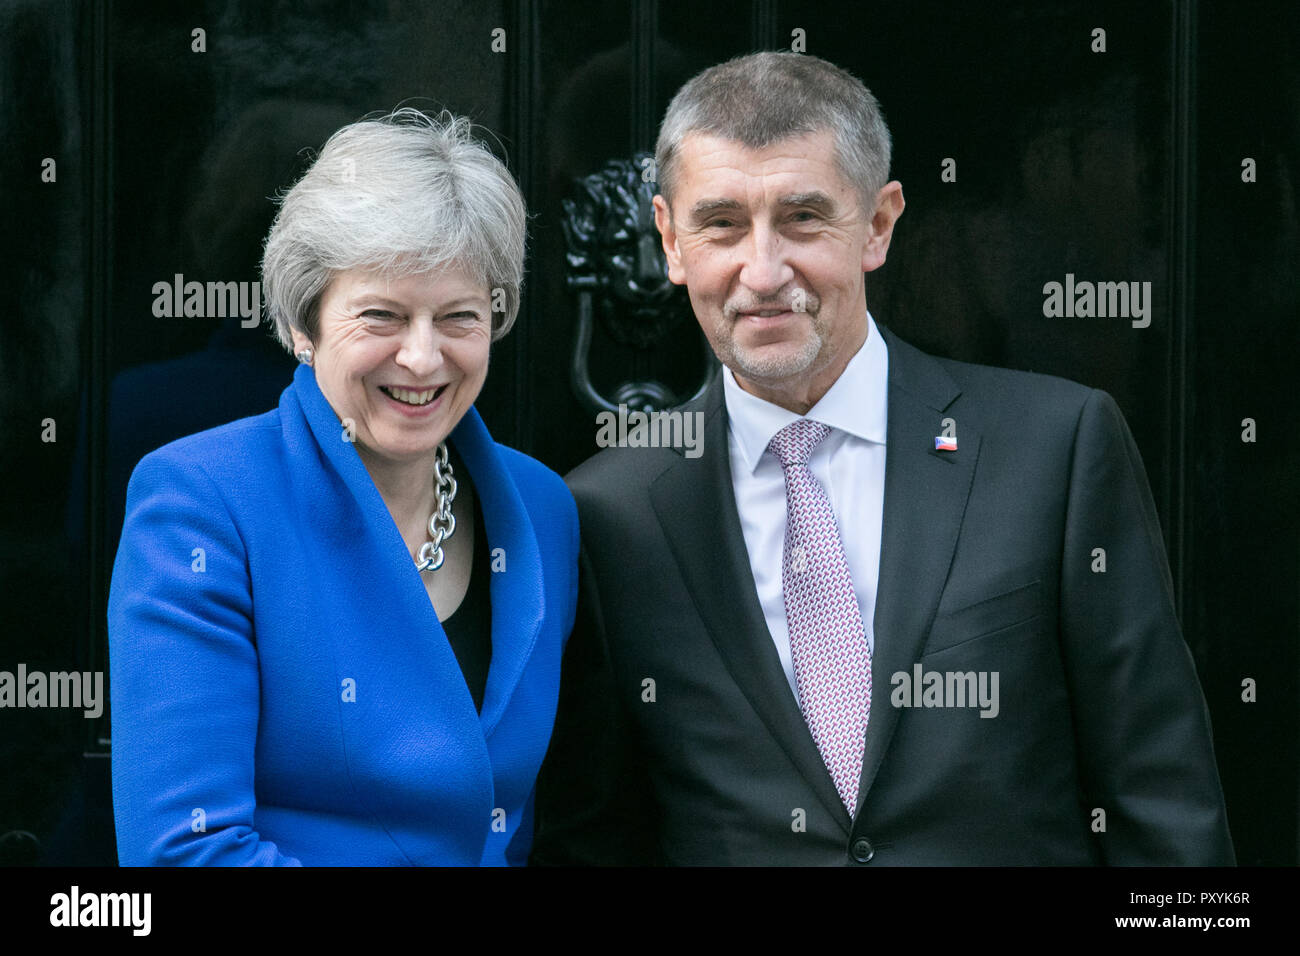 The Prime Minister of the Czech Republic, Andrej Babiš is welcomed at Downing Street By Theresa May who are expected to discuss Brexit during their bilateral meeting at Number 10 Credit: amer ghazzal/Alamy Live News - Stock Image